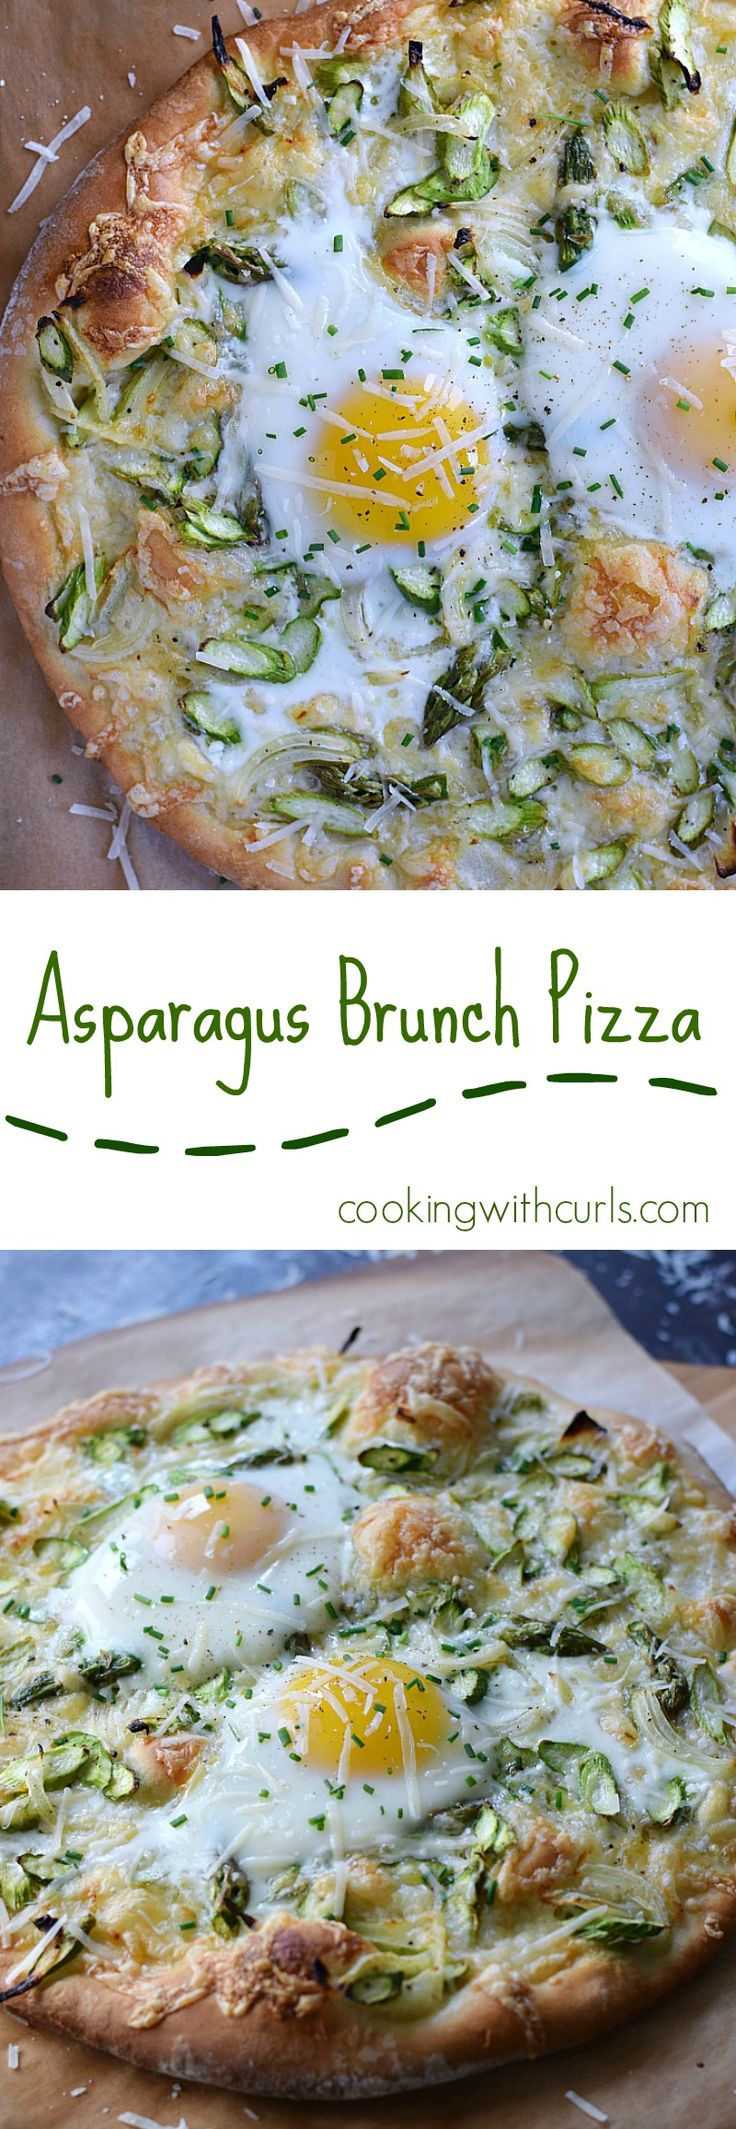 Celebrate Spring with a delicious Asparagus Brunch Pizza at your next family gathering   cookingwithcurls.com